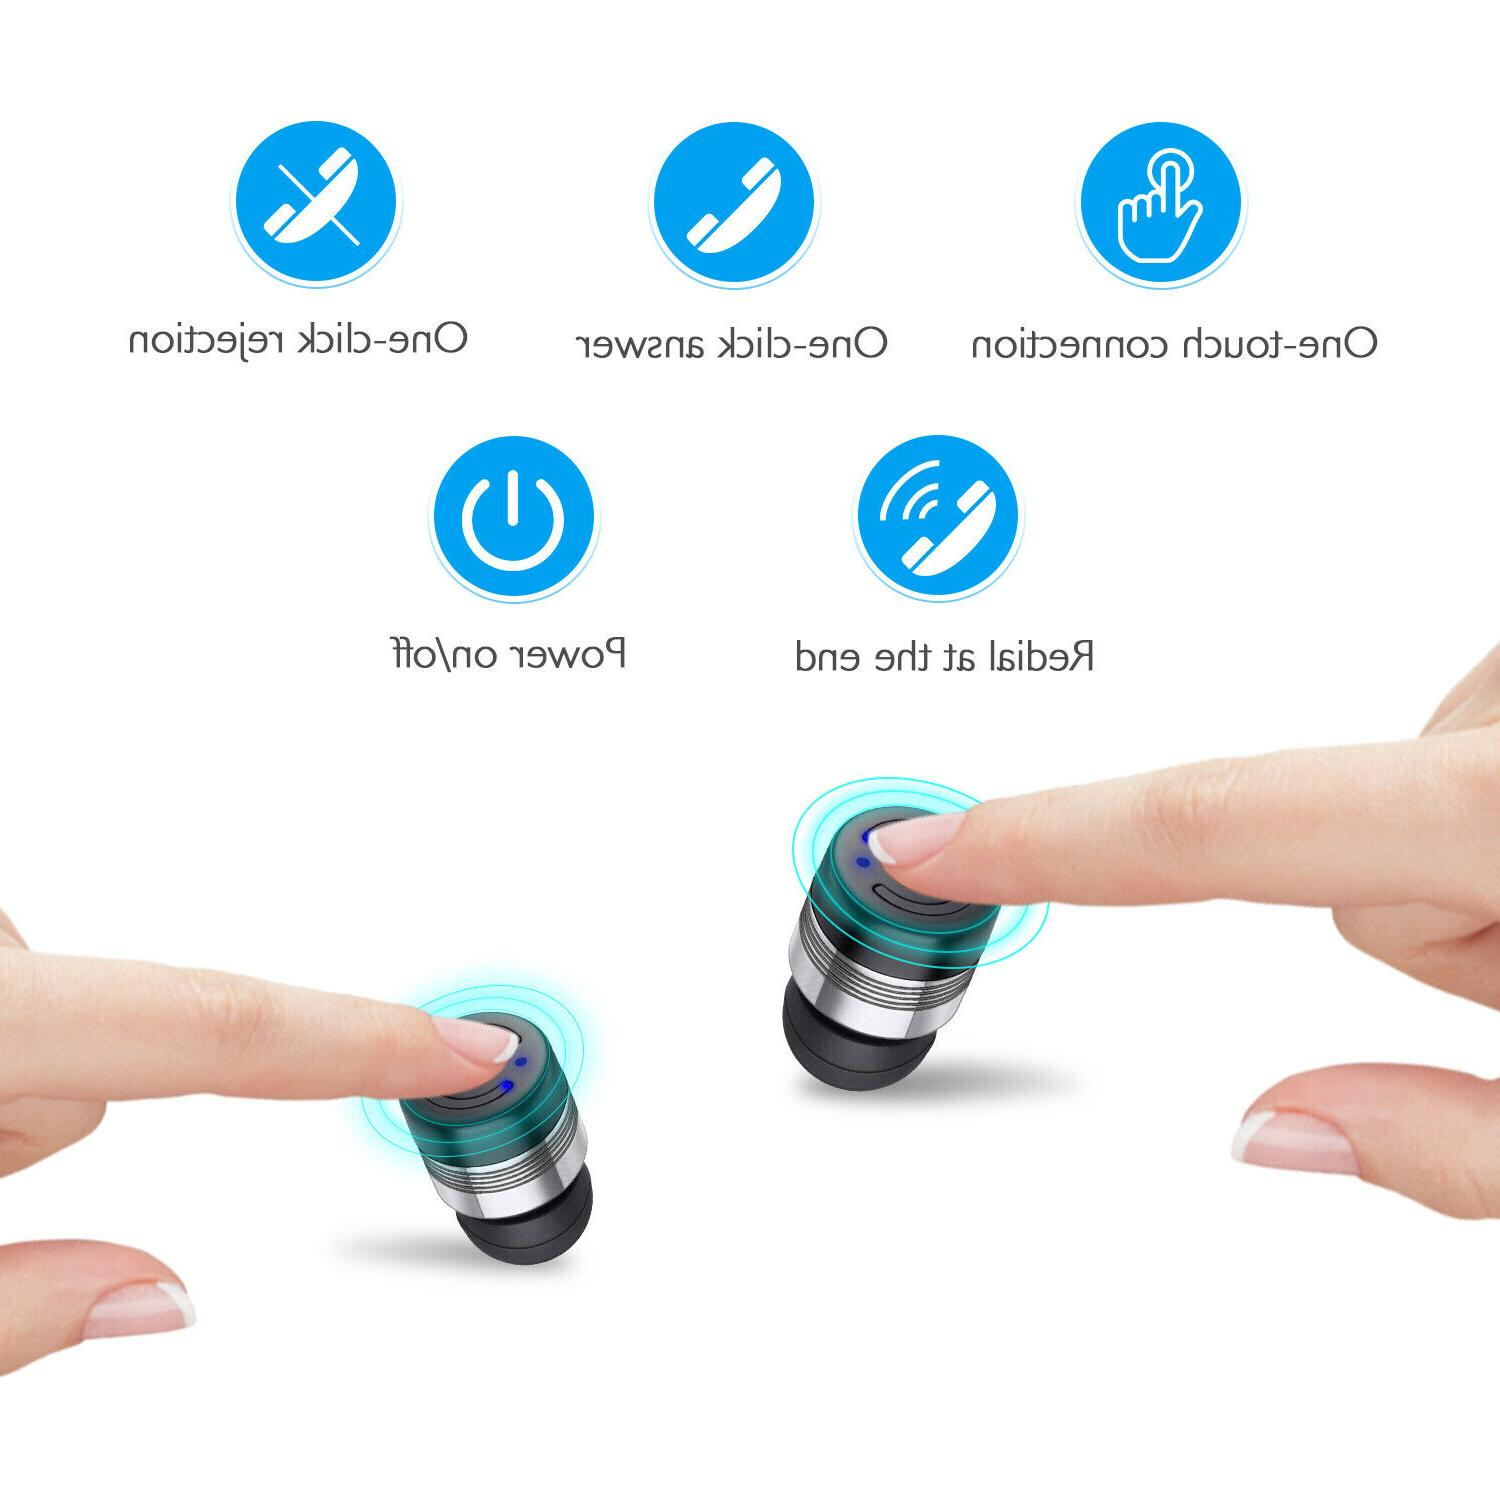 TWS Wireless Earbuds 5.0 Mic